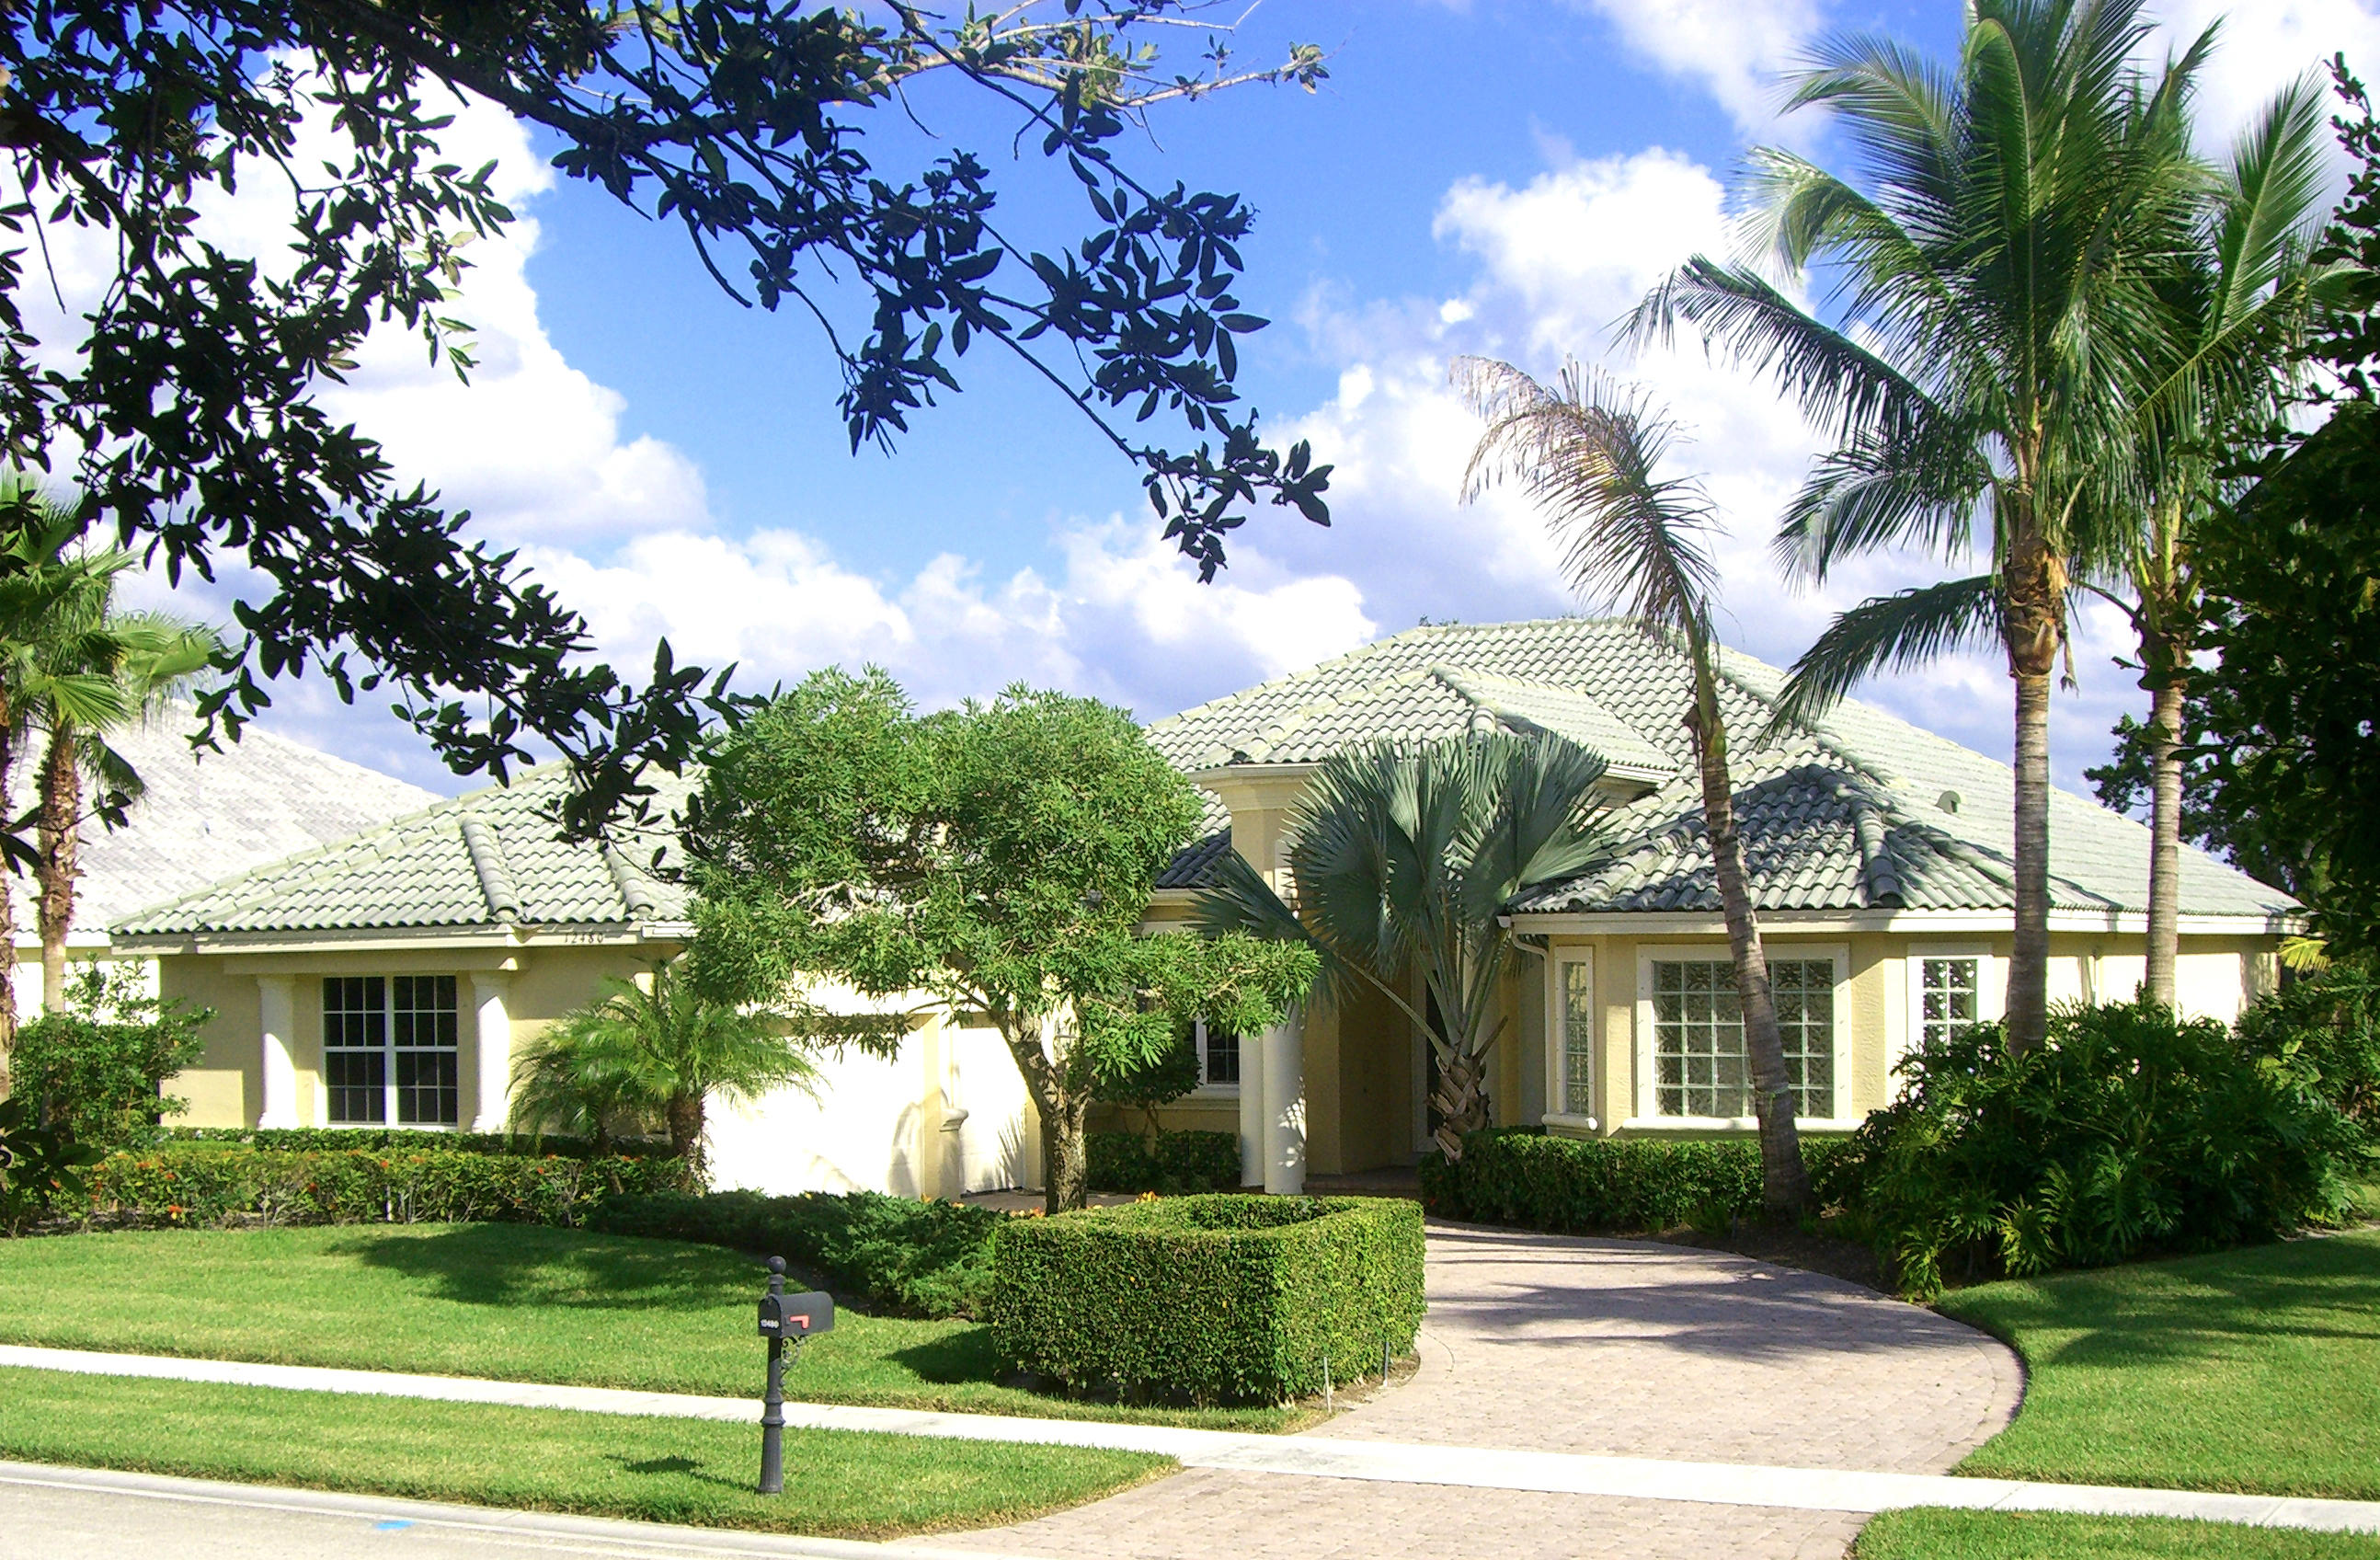 12480 Sunnydale Drive, Wellington, Florida 33414, 4 Bedrooms Bedrooms, ,4 BathroomsBathrooms,Single Family,For Rent,Palm Beach Polo, Golf & Country Club,Sunnydale,1,RX-10548215